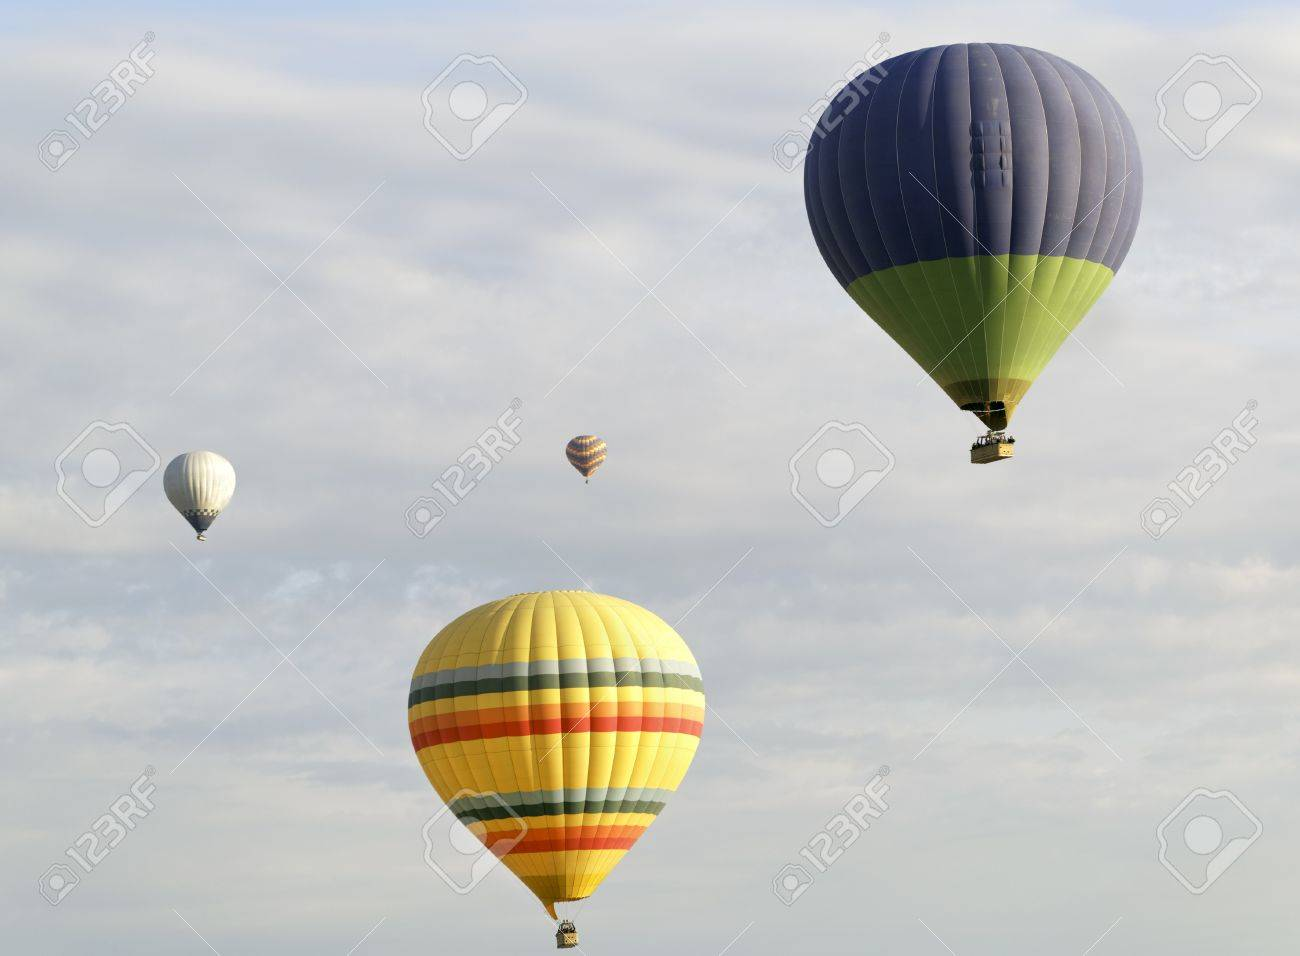 Horizontal Landscape Of Four Hot Air Balloons Amongst A Cloudy ...